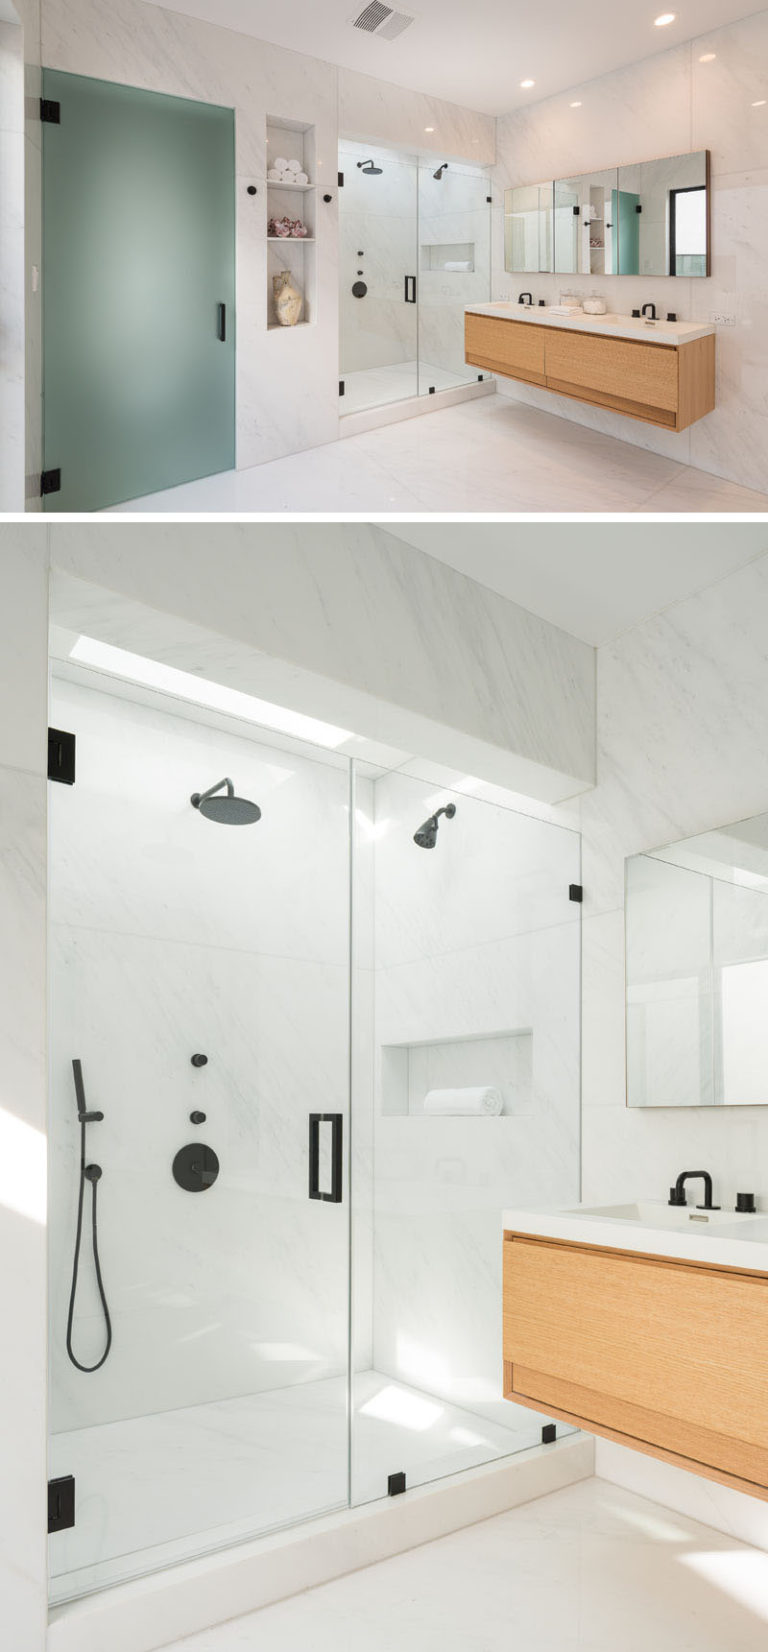 1572614297 899 beautiful walk in shower designs that could and should inspire you - Beautiful Walk In Shower Designs That Could and Should Inspire You